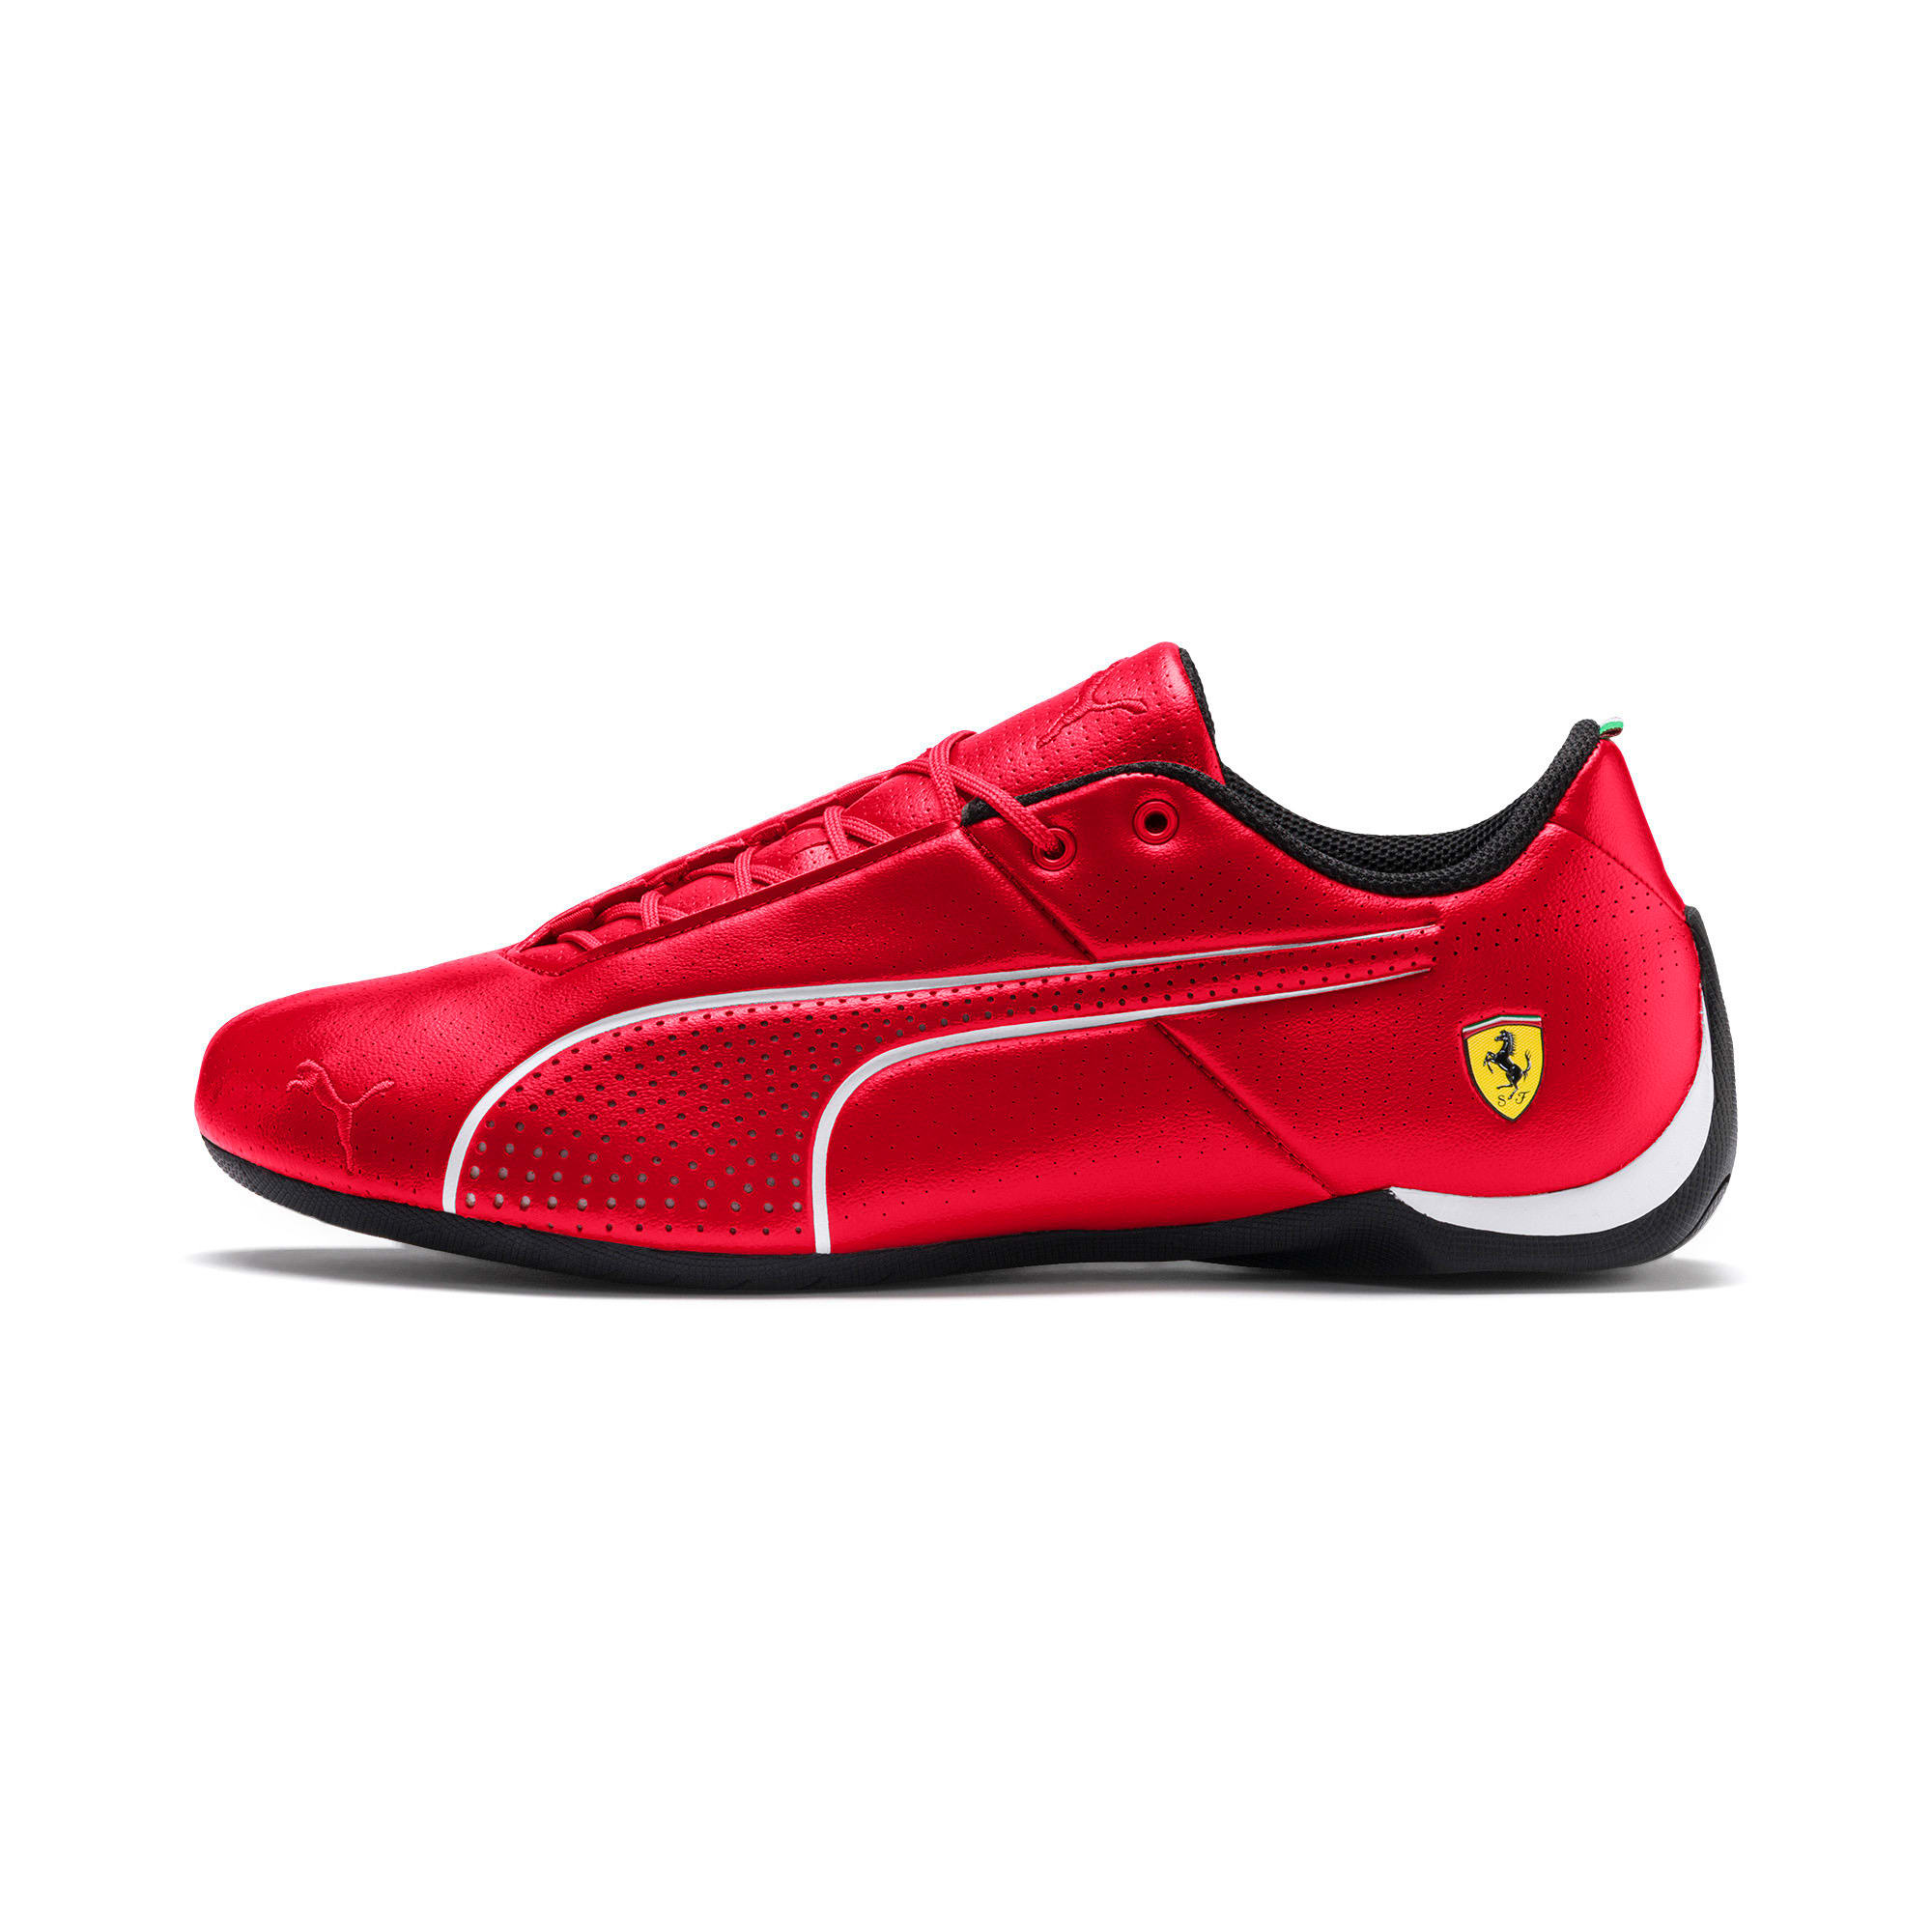 Thumbnail 1 of Ferrari Future Cat Ultra sneakers, Rosso Corsa-Puma White, medium